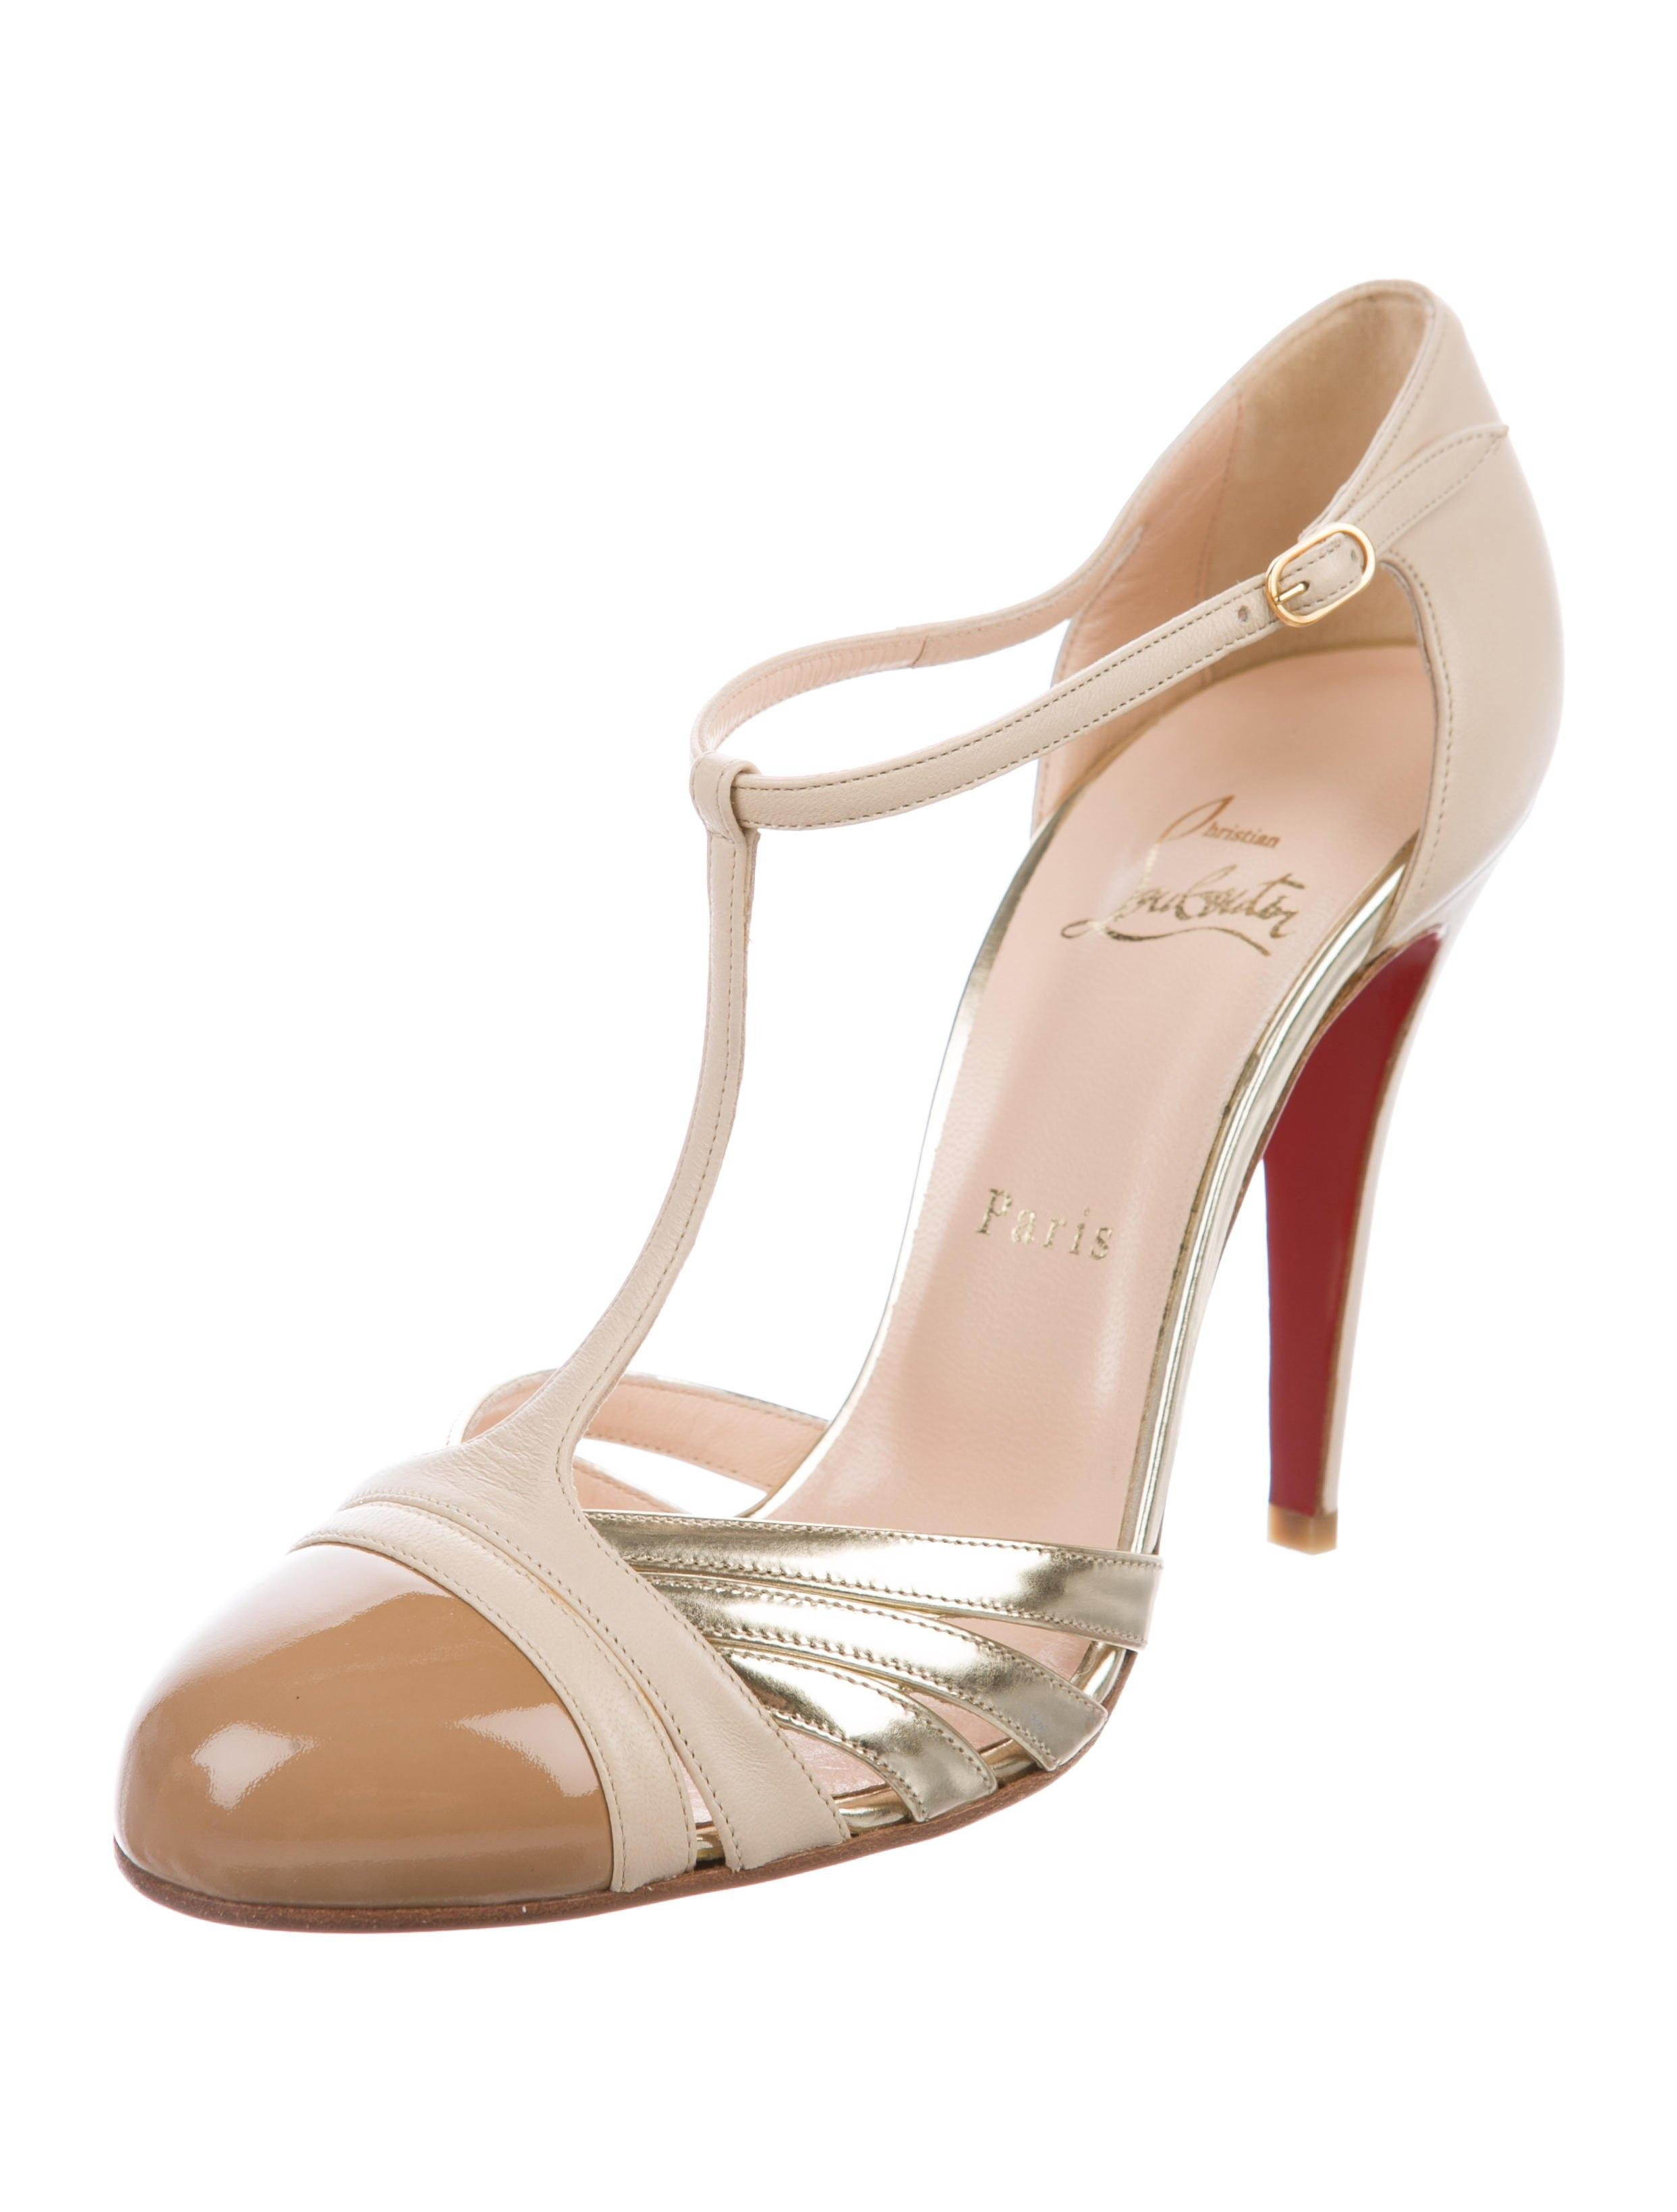 Christian Louboutin New Gino 100 Leather 8.5 Pumps Size EU 38.5 (Approx. US 8.5) Regular (M, B)